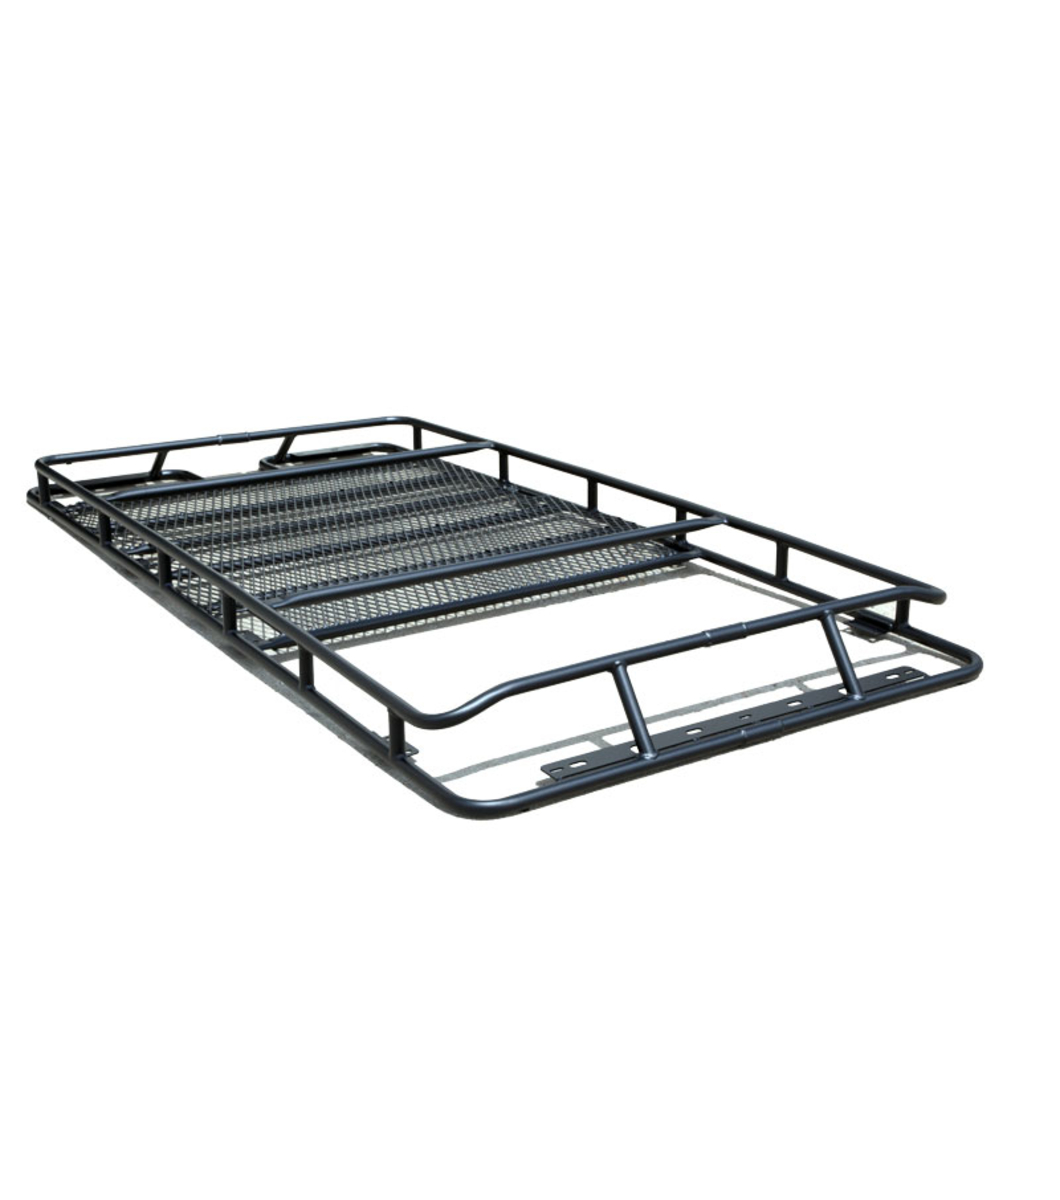 Land Rover Lr 4 Ranger Rack Multi Light Setup With Sunroof